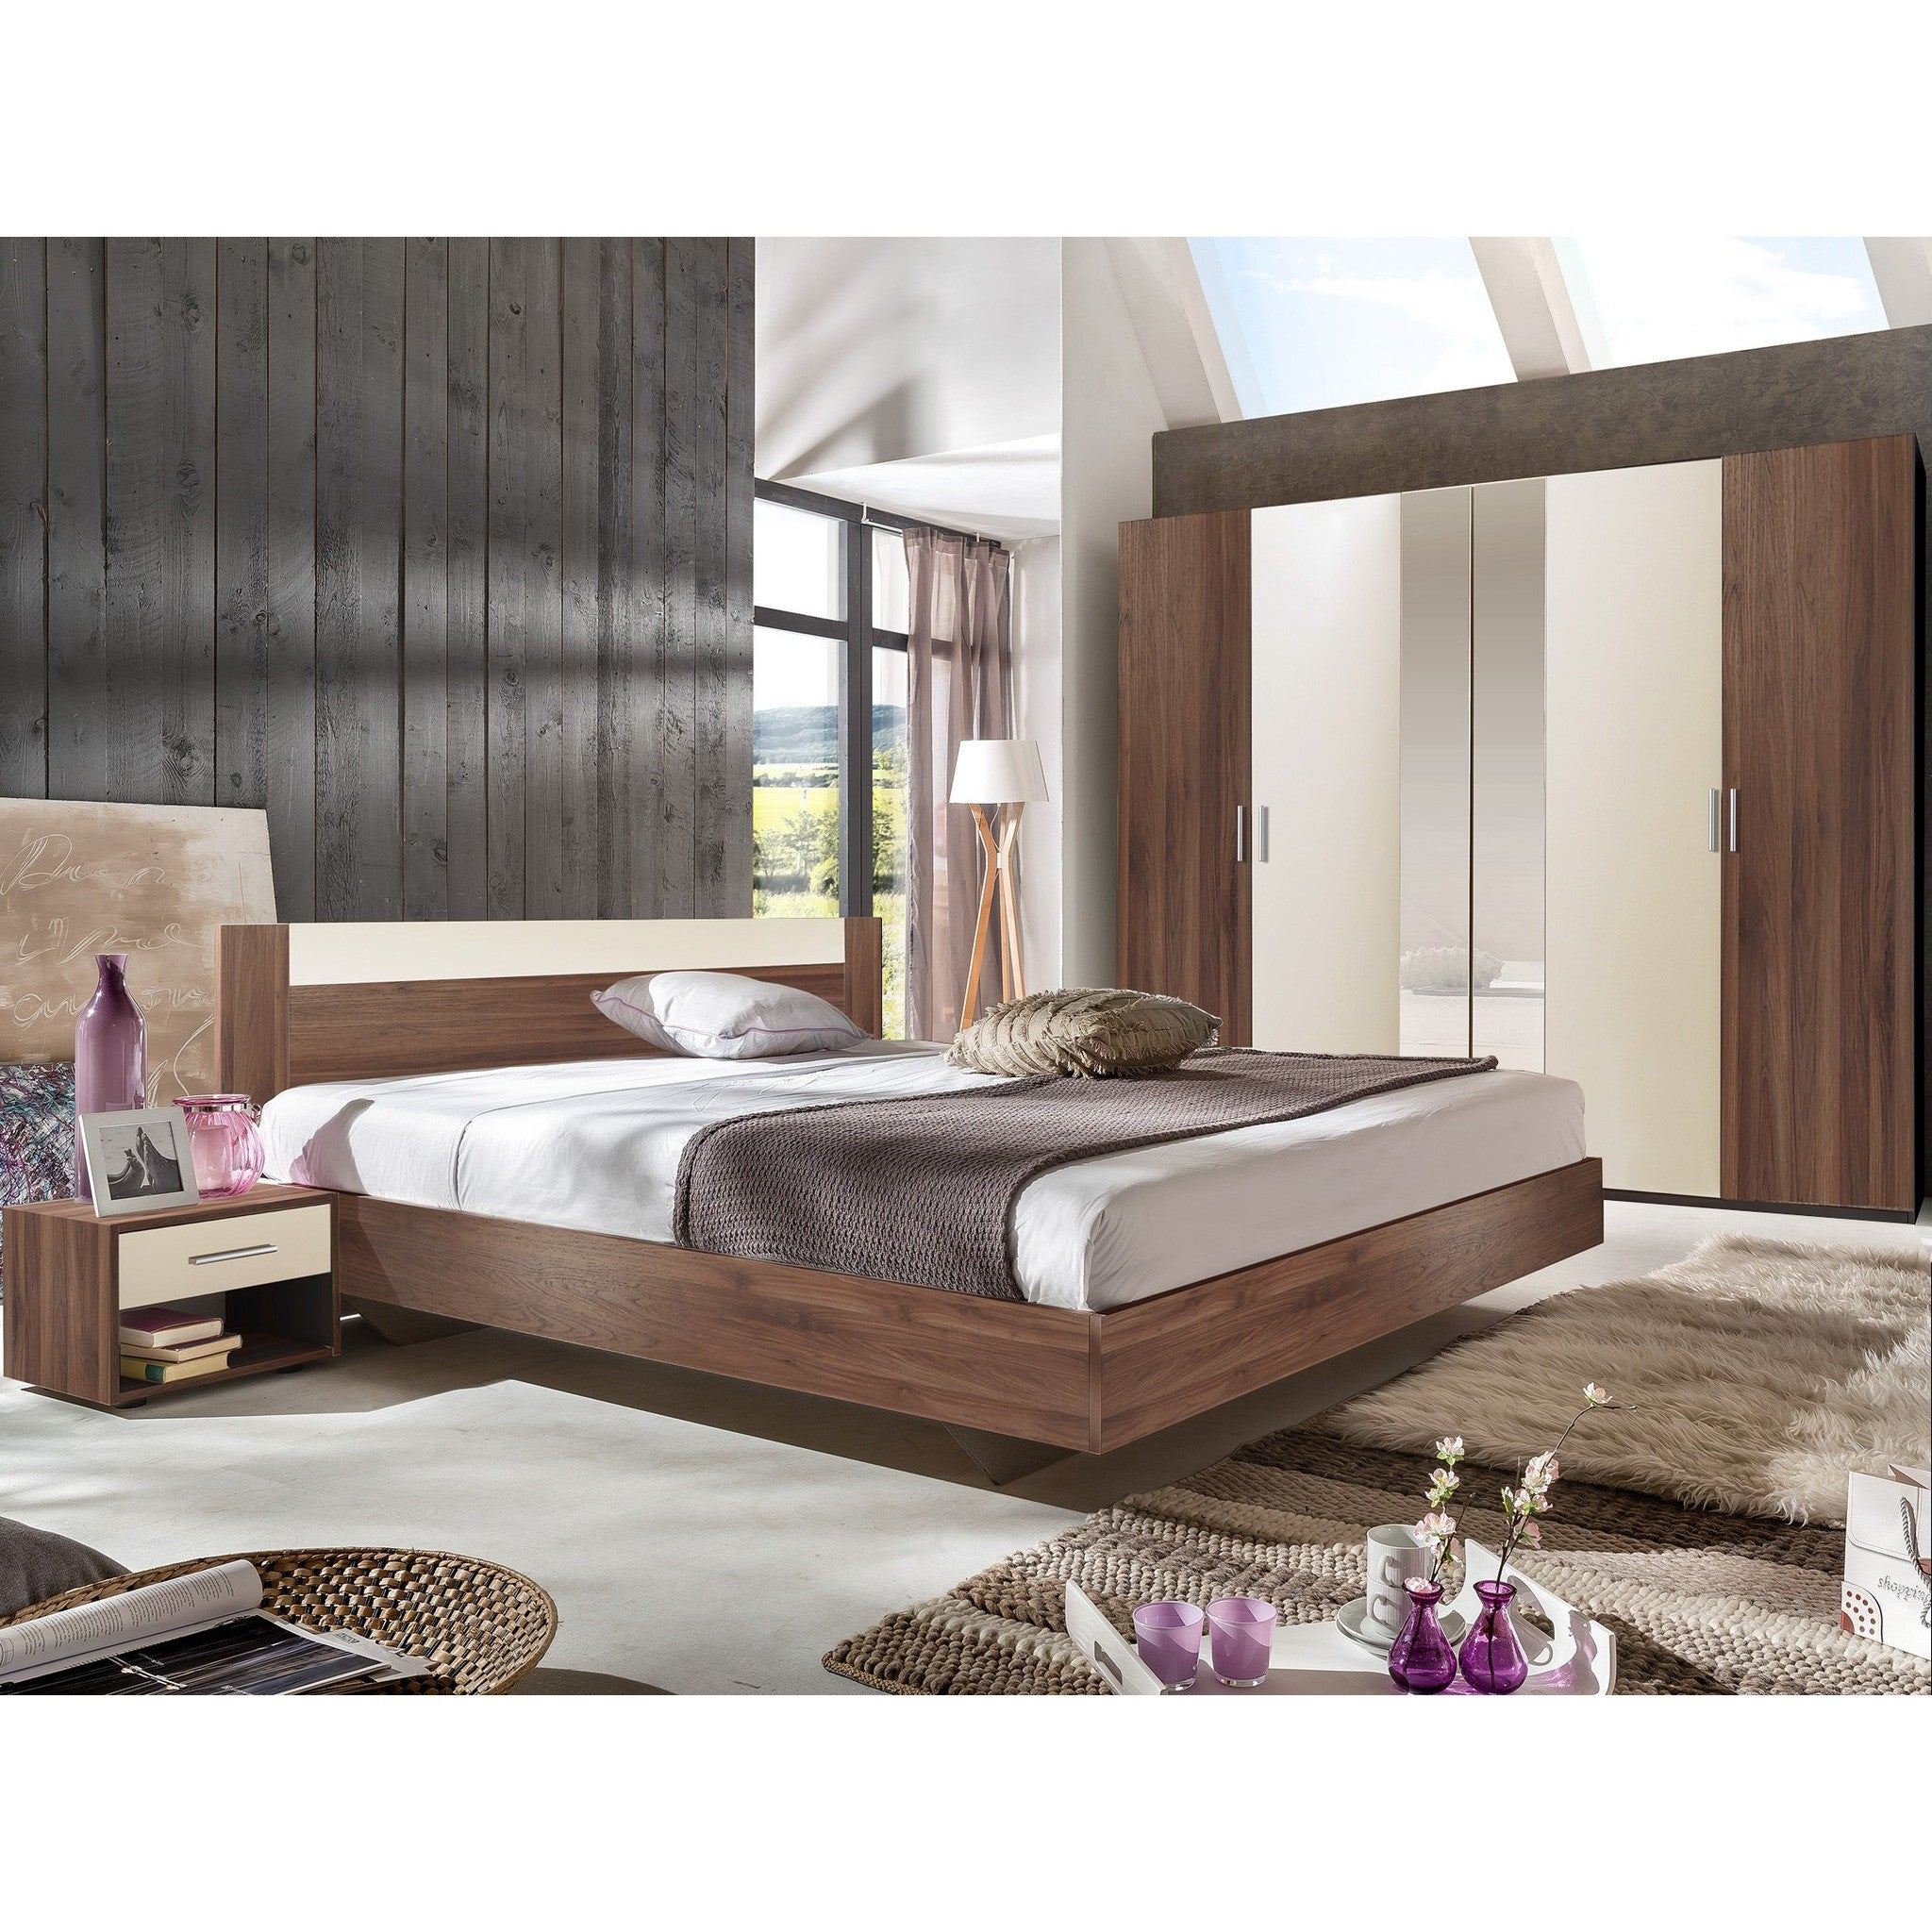 Qmax 39 Liana 39 Range German Made Bedroom Furniture Columbia Walnut Fin Freedom Homestore